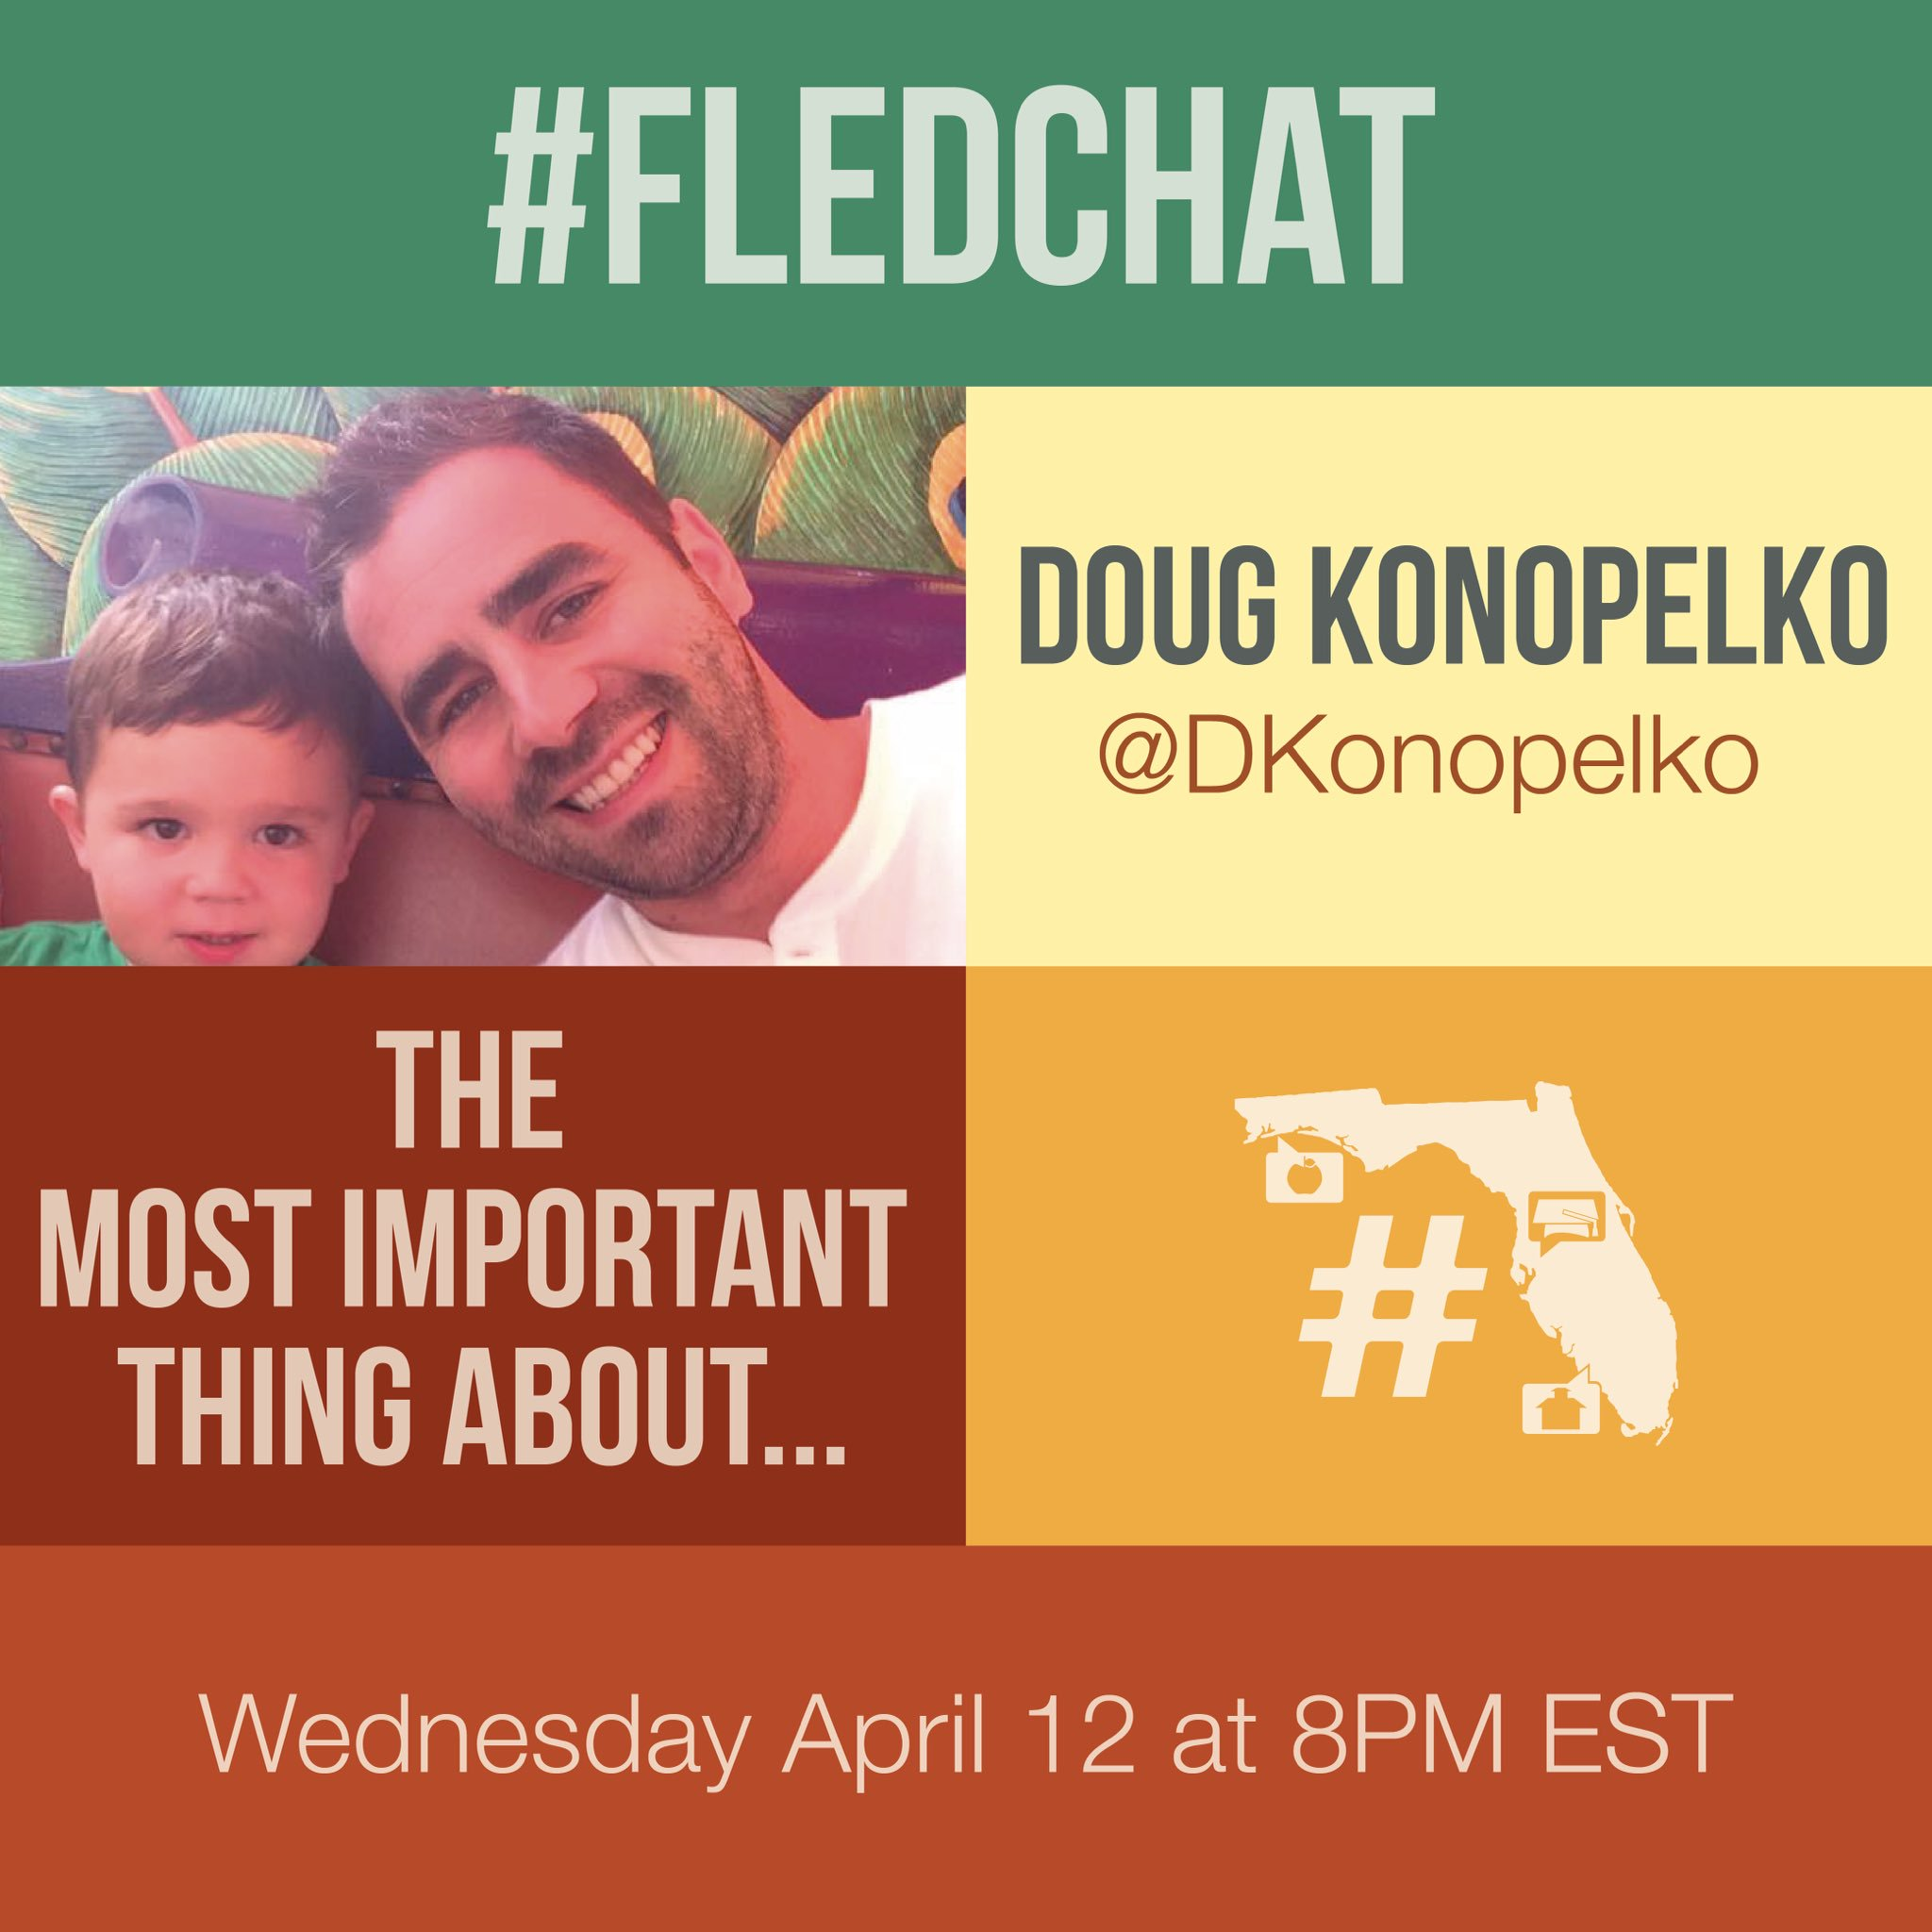 T-Minus 90 minutes until this week's #FLEdChat where we discuss The Most Important Thing About... https://t.co/LHaZF1EaJm